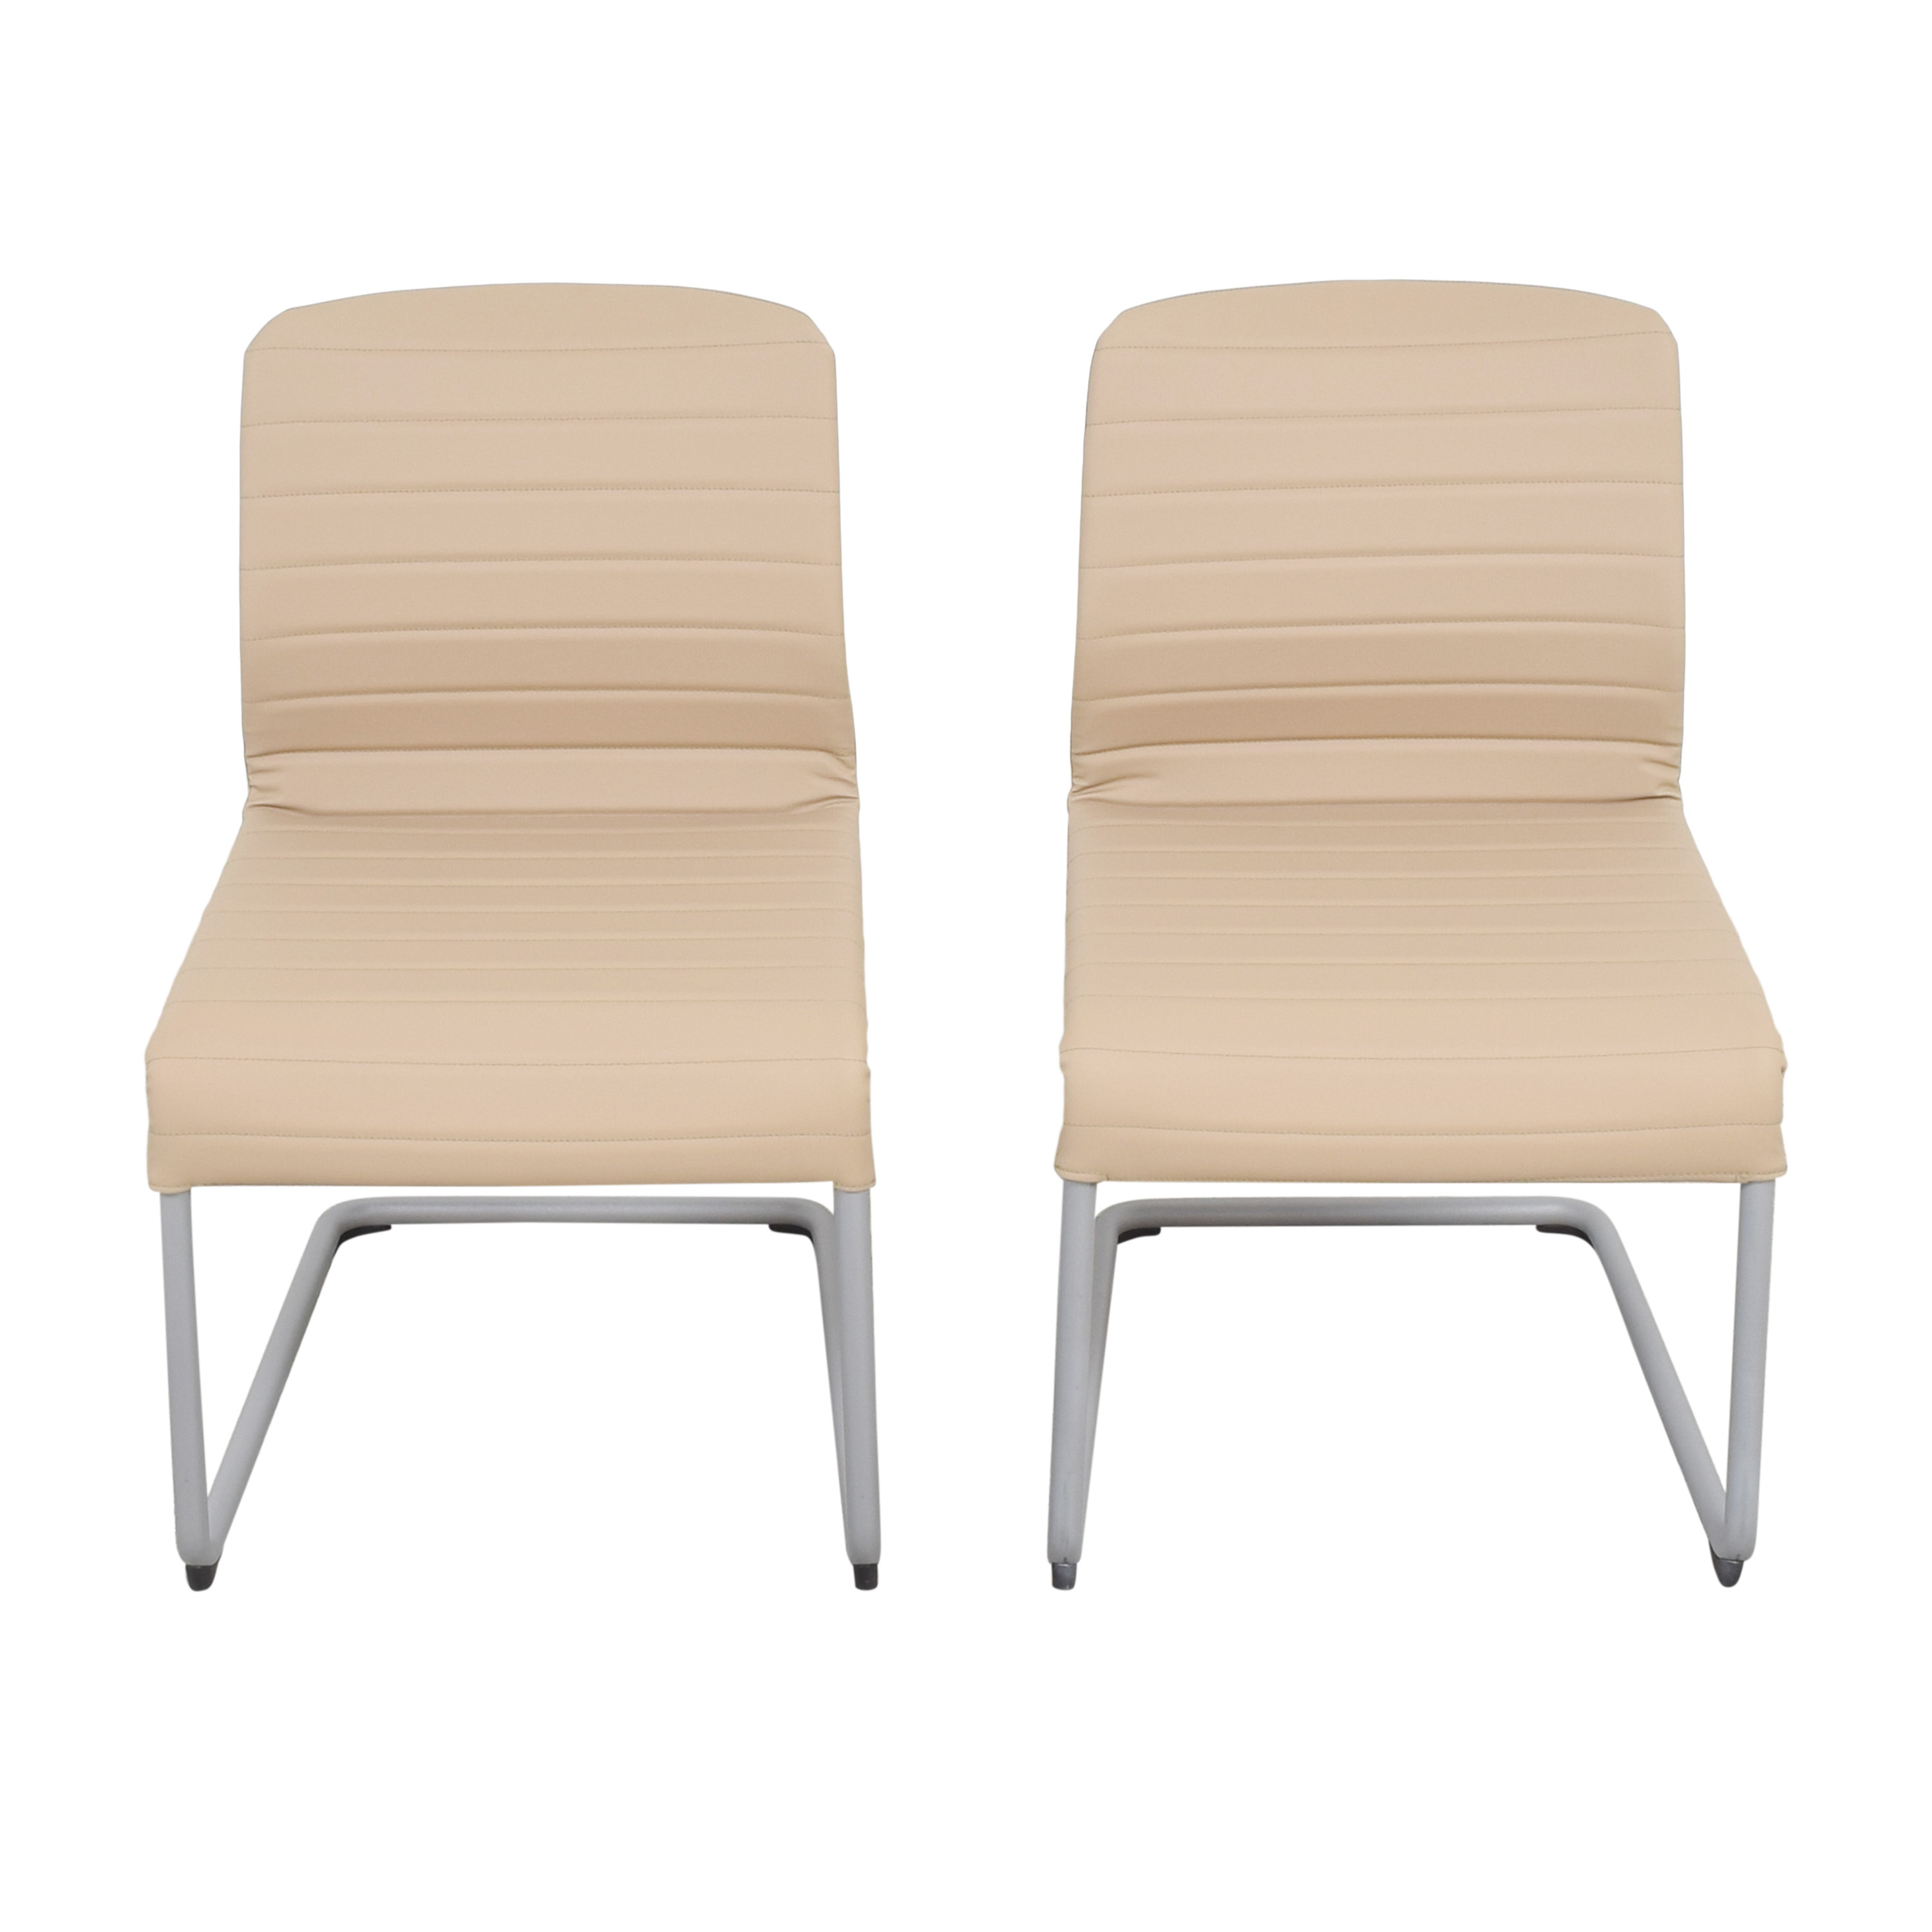 Global Furniture Group Global Furniture Group Lite Cantilever Frame Side Chairs nyc